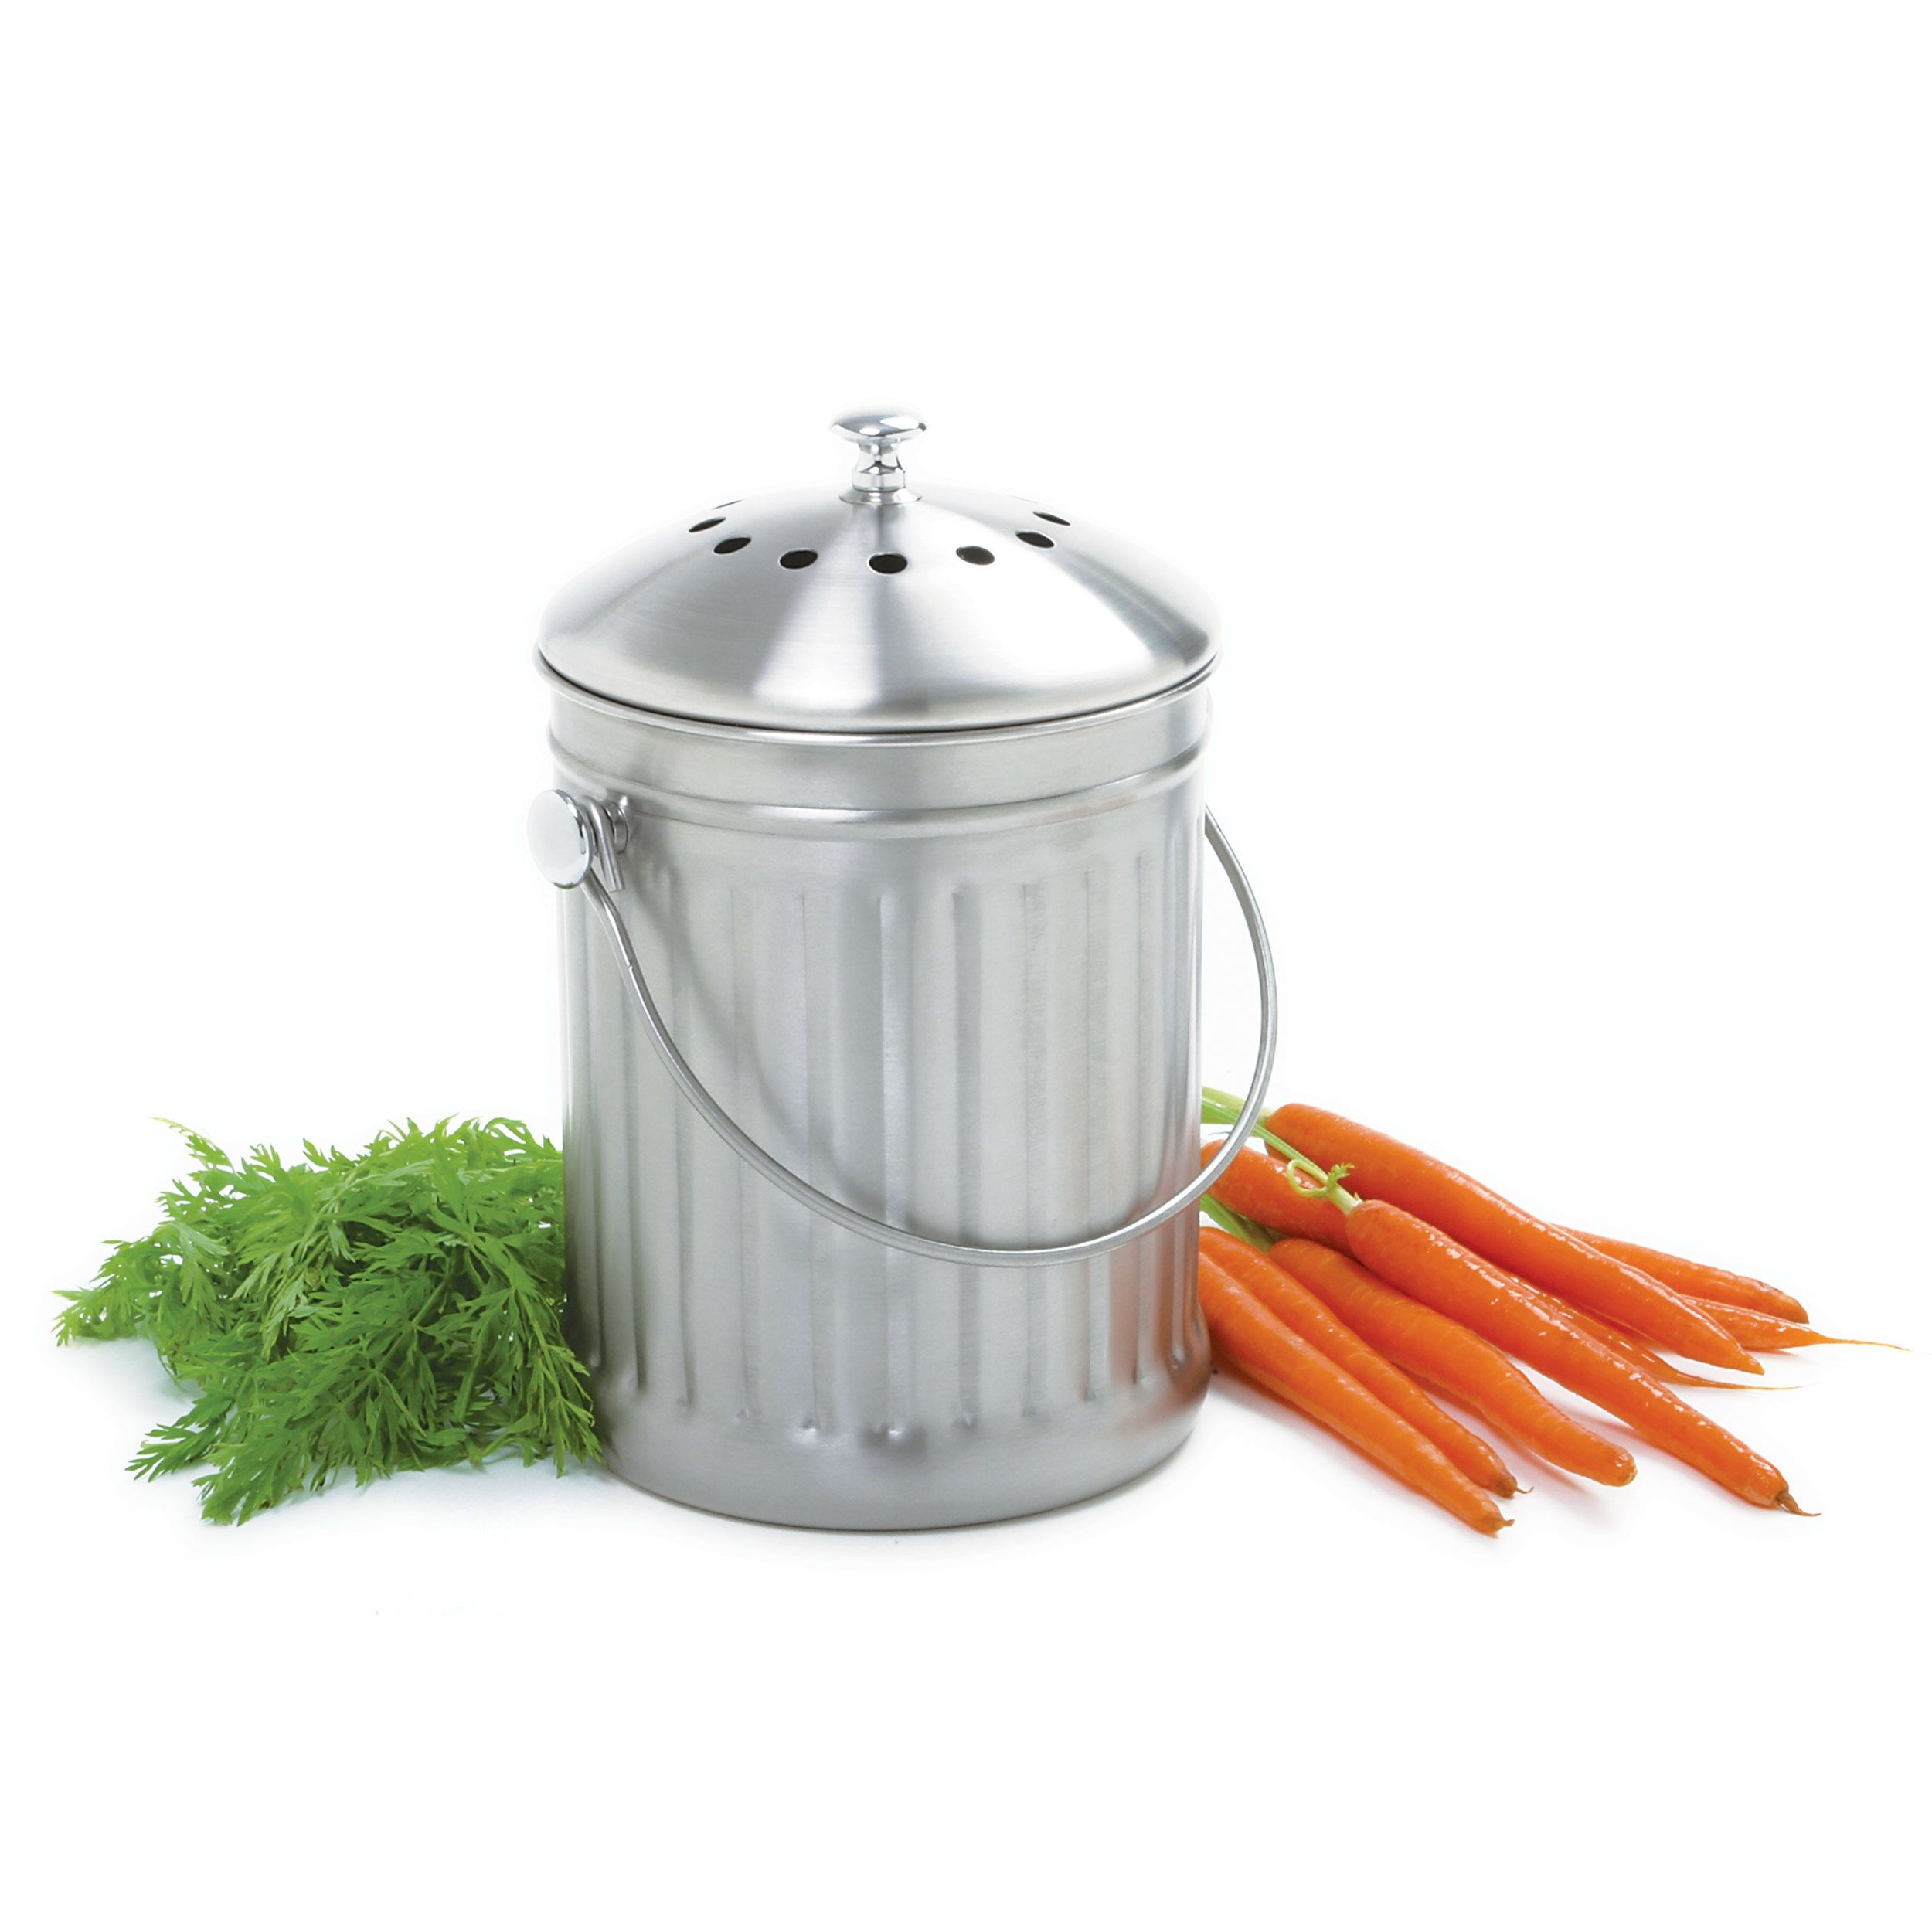 Stainless Steel Compost Crock, Compost Pail